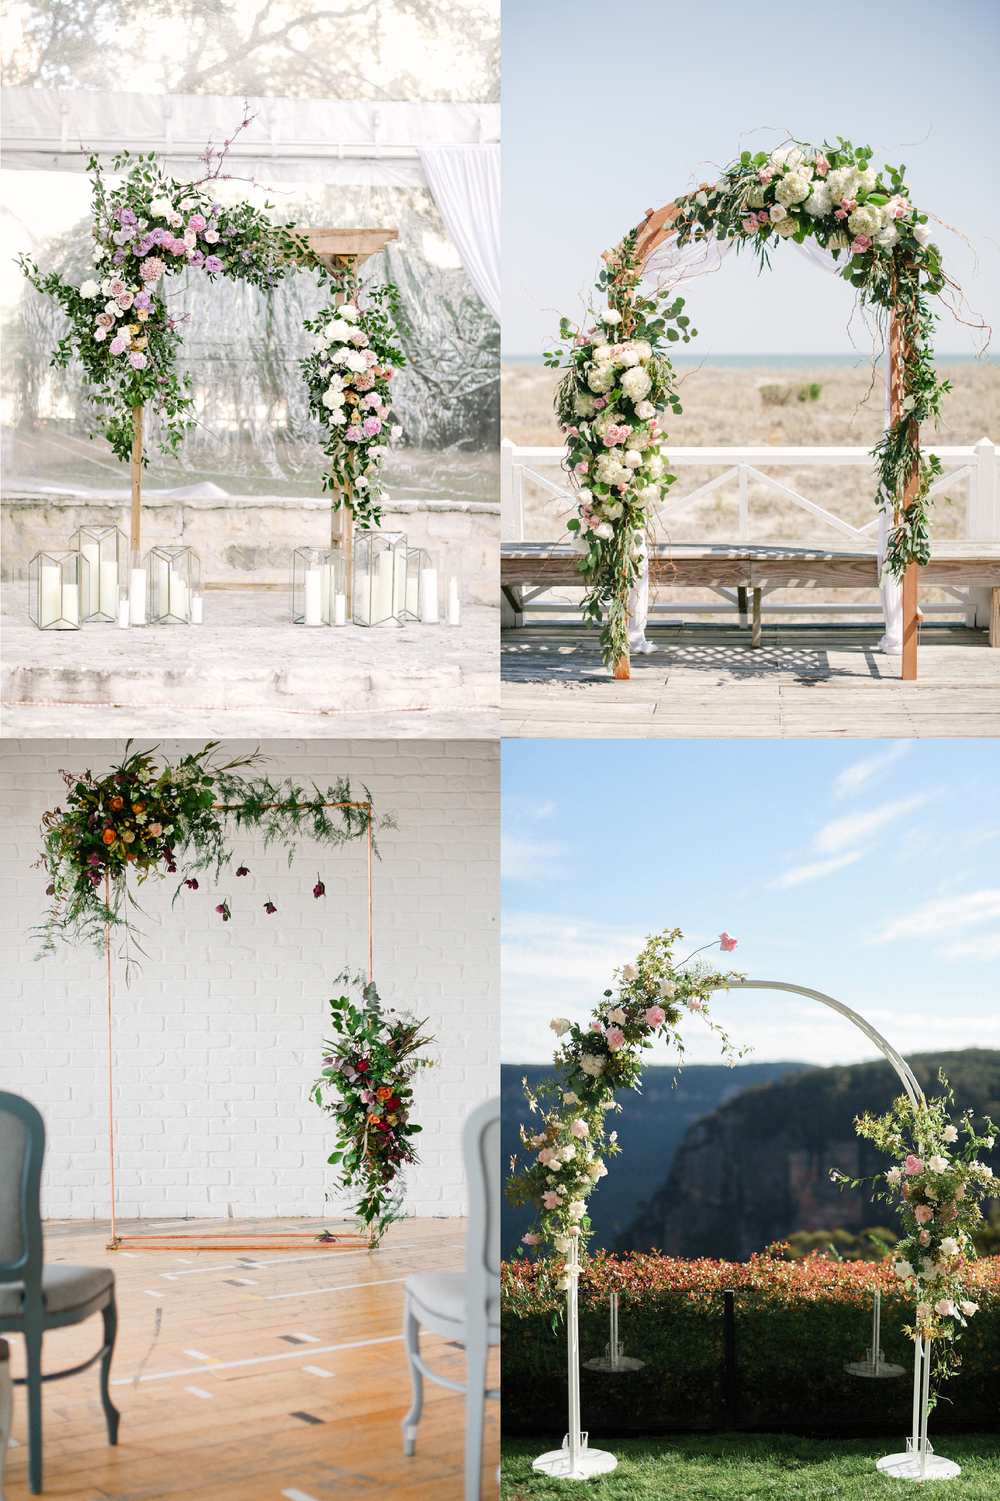 FROM CLOCKWISE, FROM TOP LEFT: Photo by    Julie Wichita Photography , Floral Design by Teresa Gausman of Premiere Events and Photo by  Britt Croft , Floral Design by  Lime Tree Bower  and photo by  girl in the white dress , Floral Design by  Joanne Truby  and Photo by  Anushé Low .